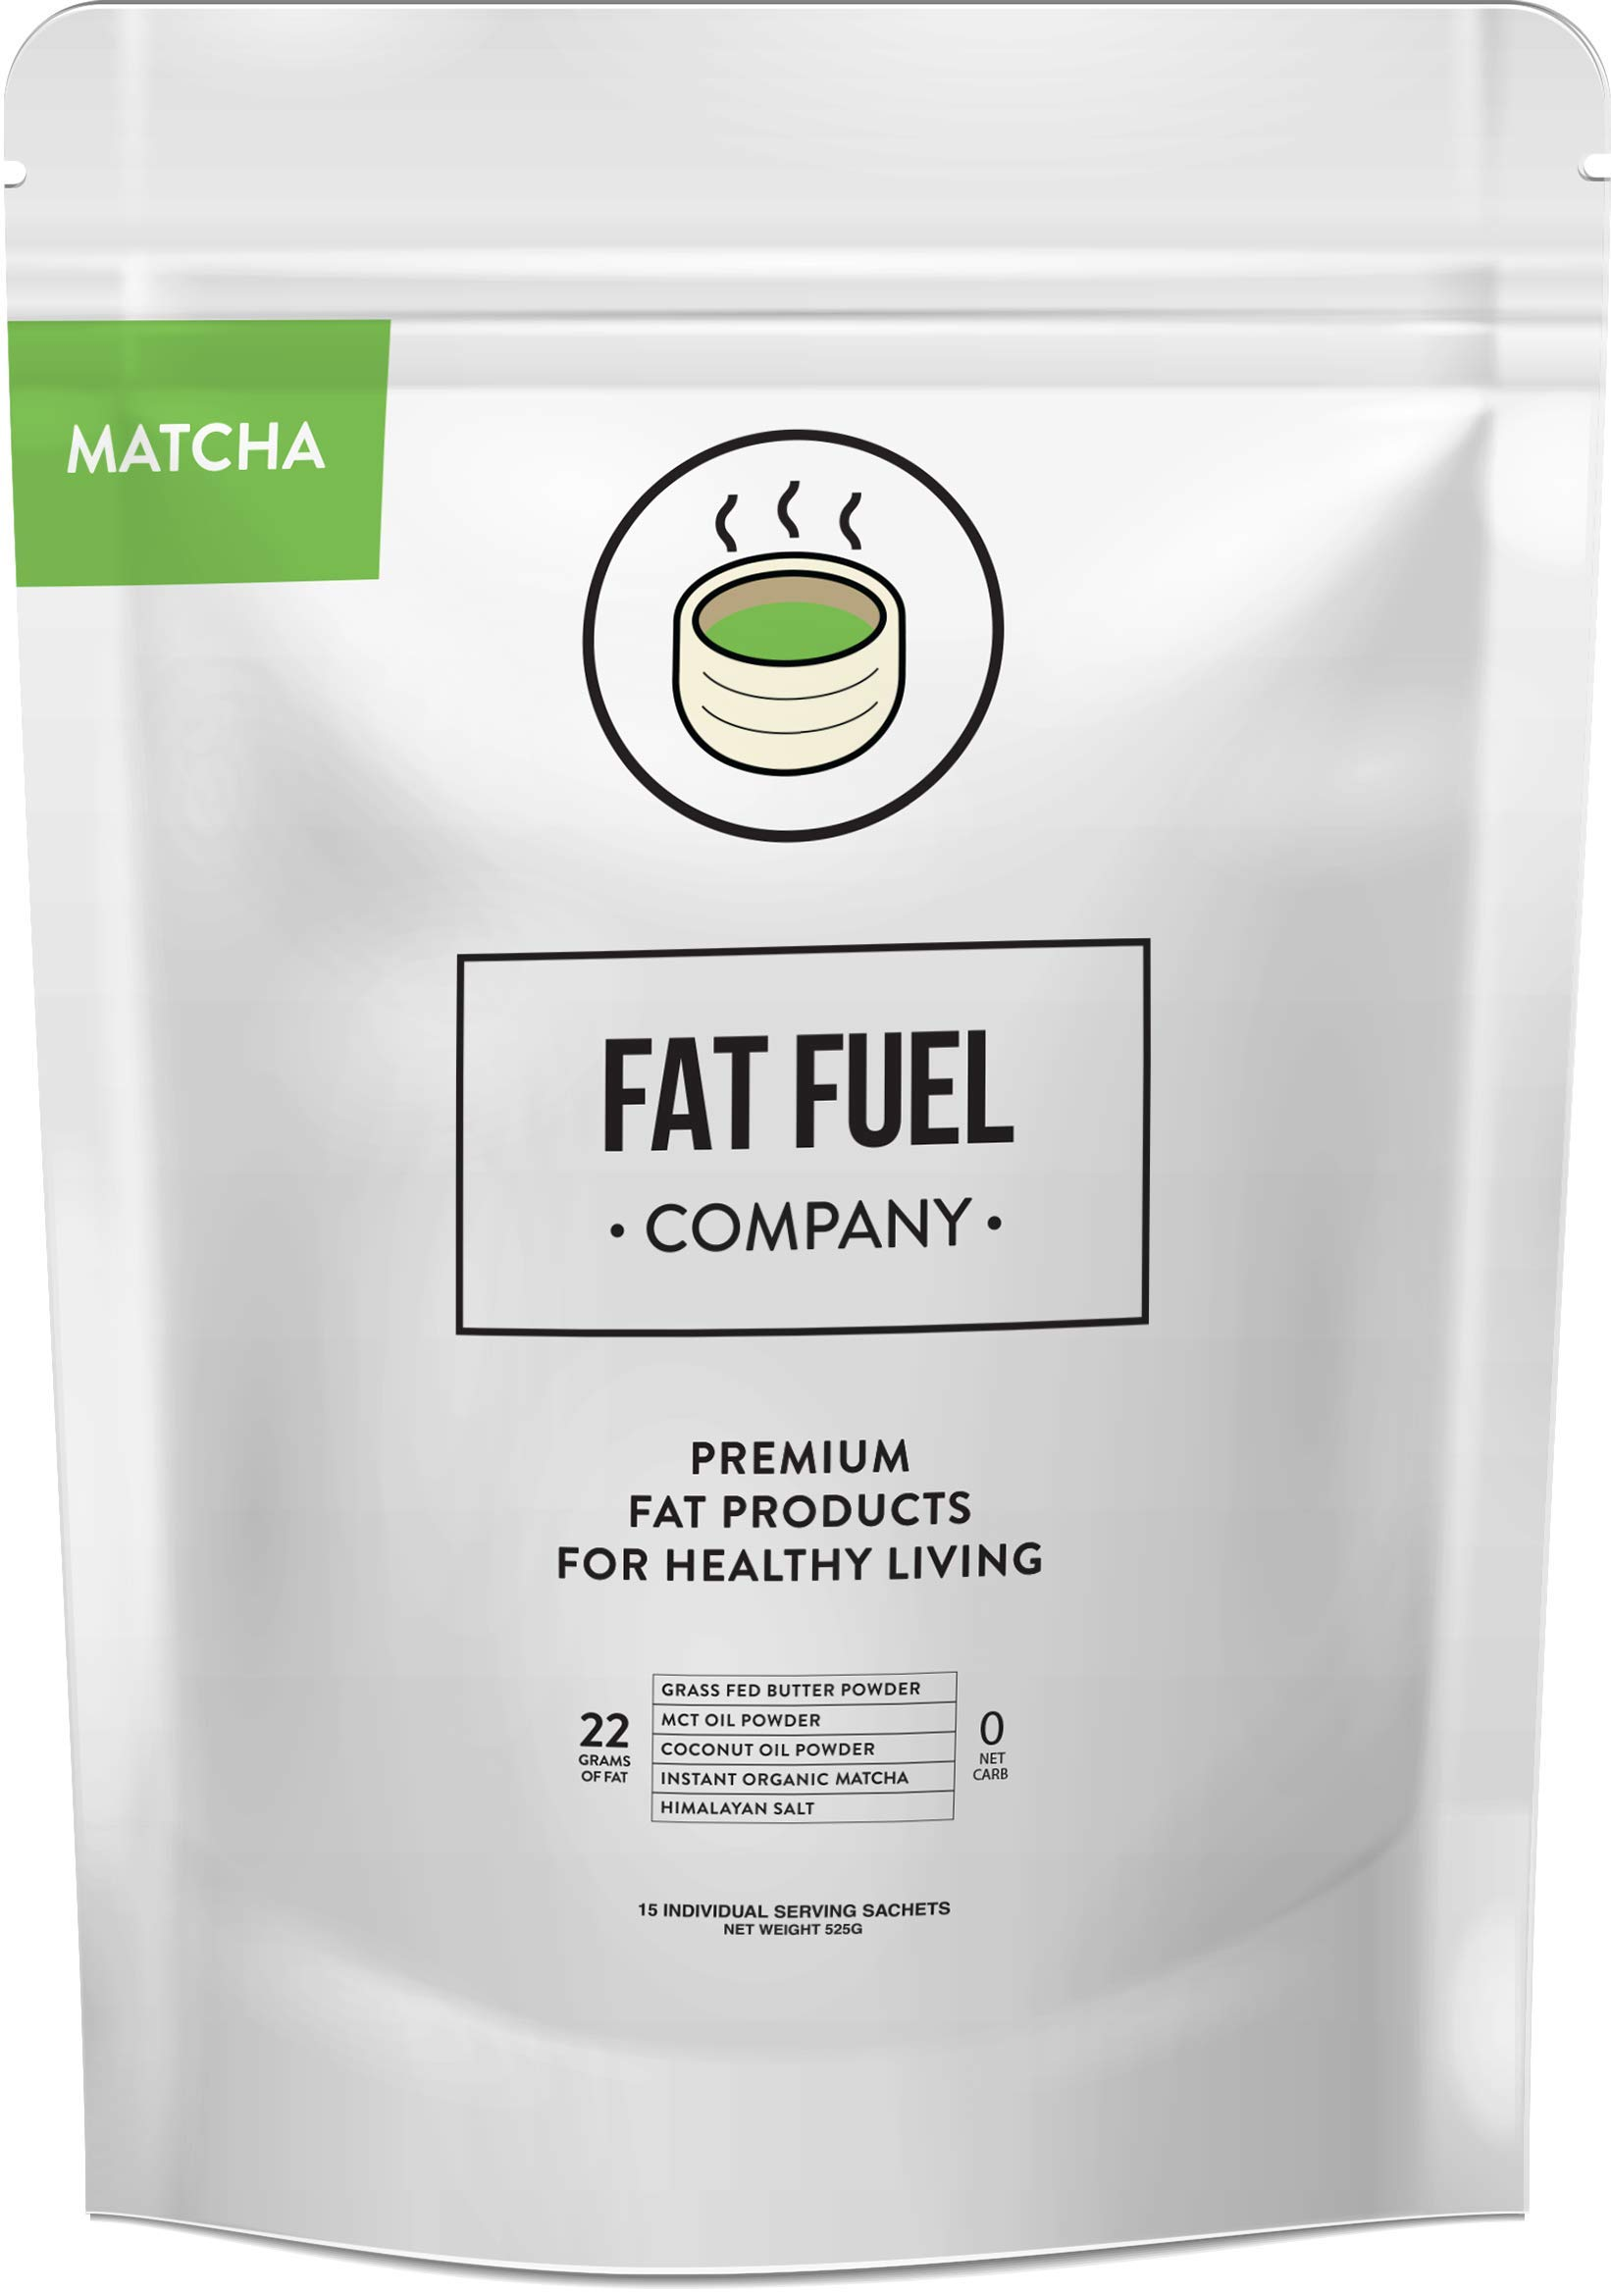 Fat Fuel Company Keto Matcha Green Tea Powder | MCT, Coconut Oil, Himalayan Salt & Grass-Fed Butter | Organic Ingredients | Energy, Focus , Detox | Perfect Drink For Low-Carb Diet | 15 Packets by The Fat Fuel Company (Image #1)